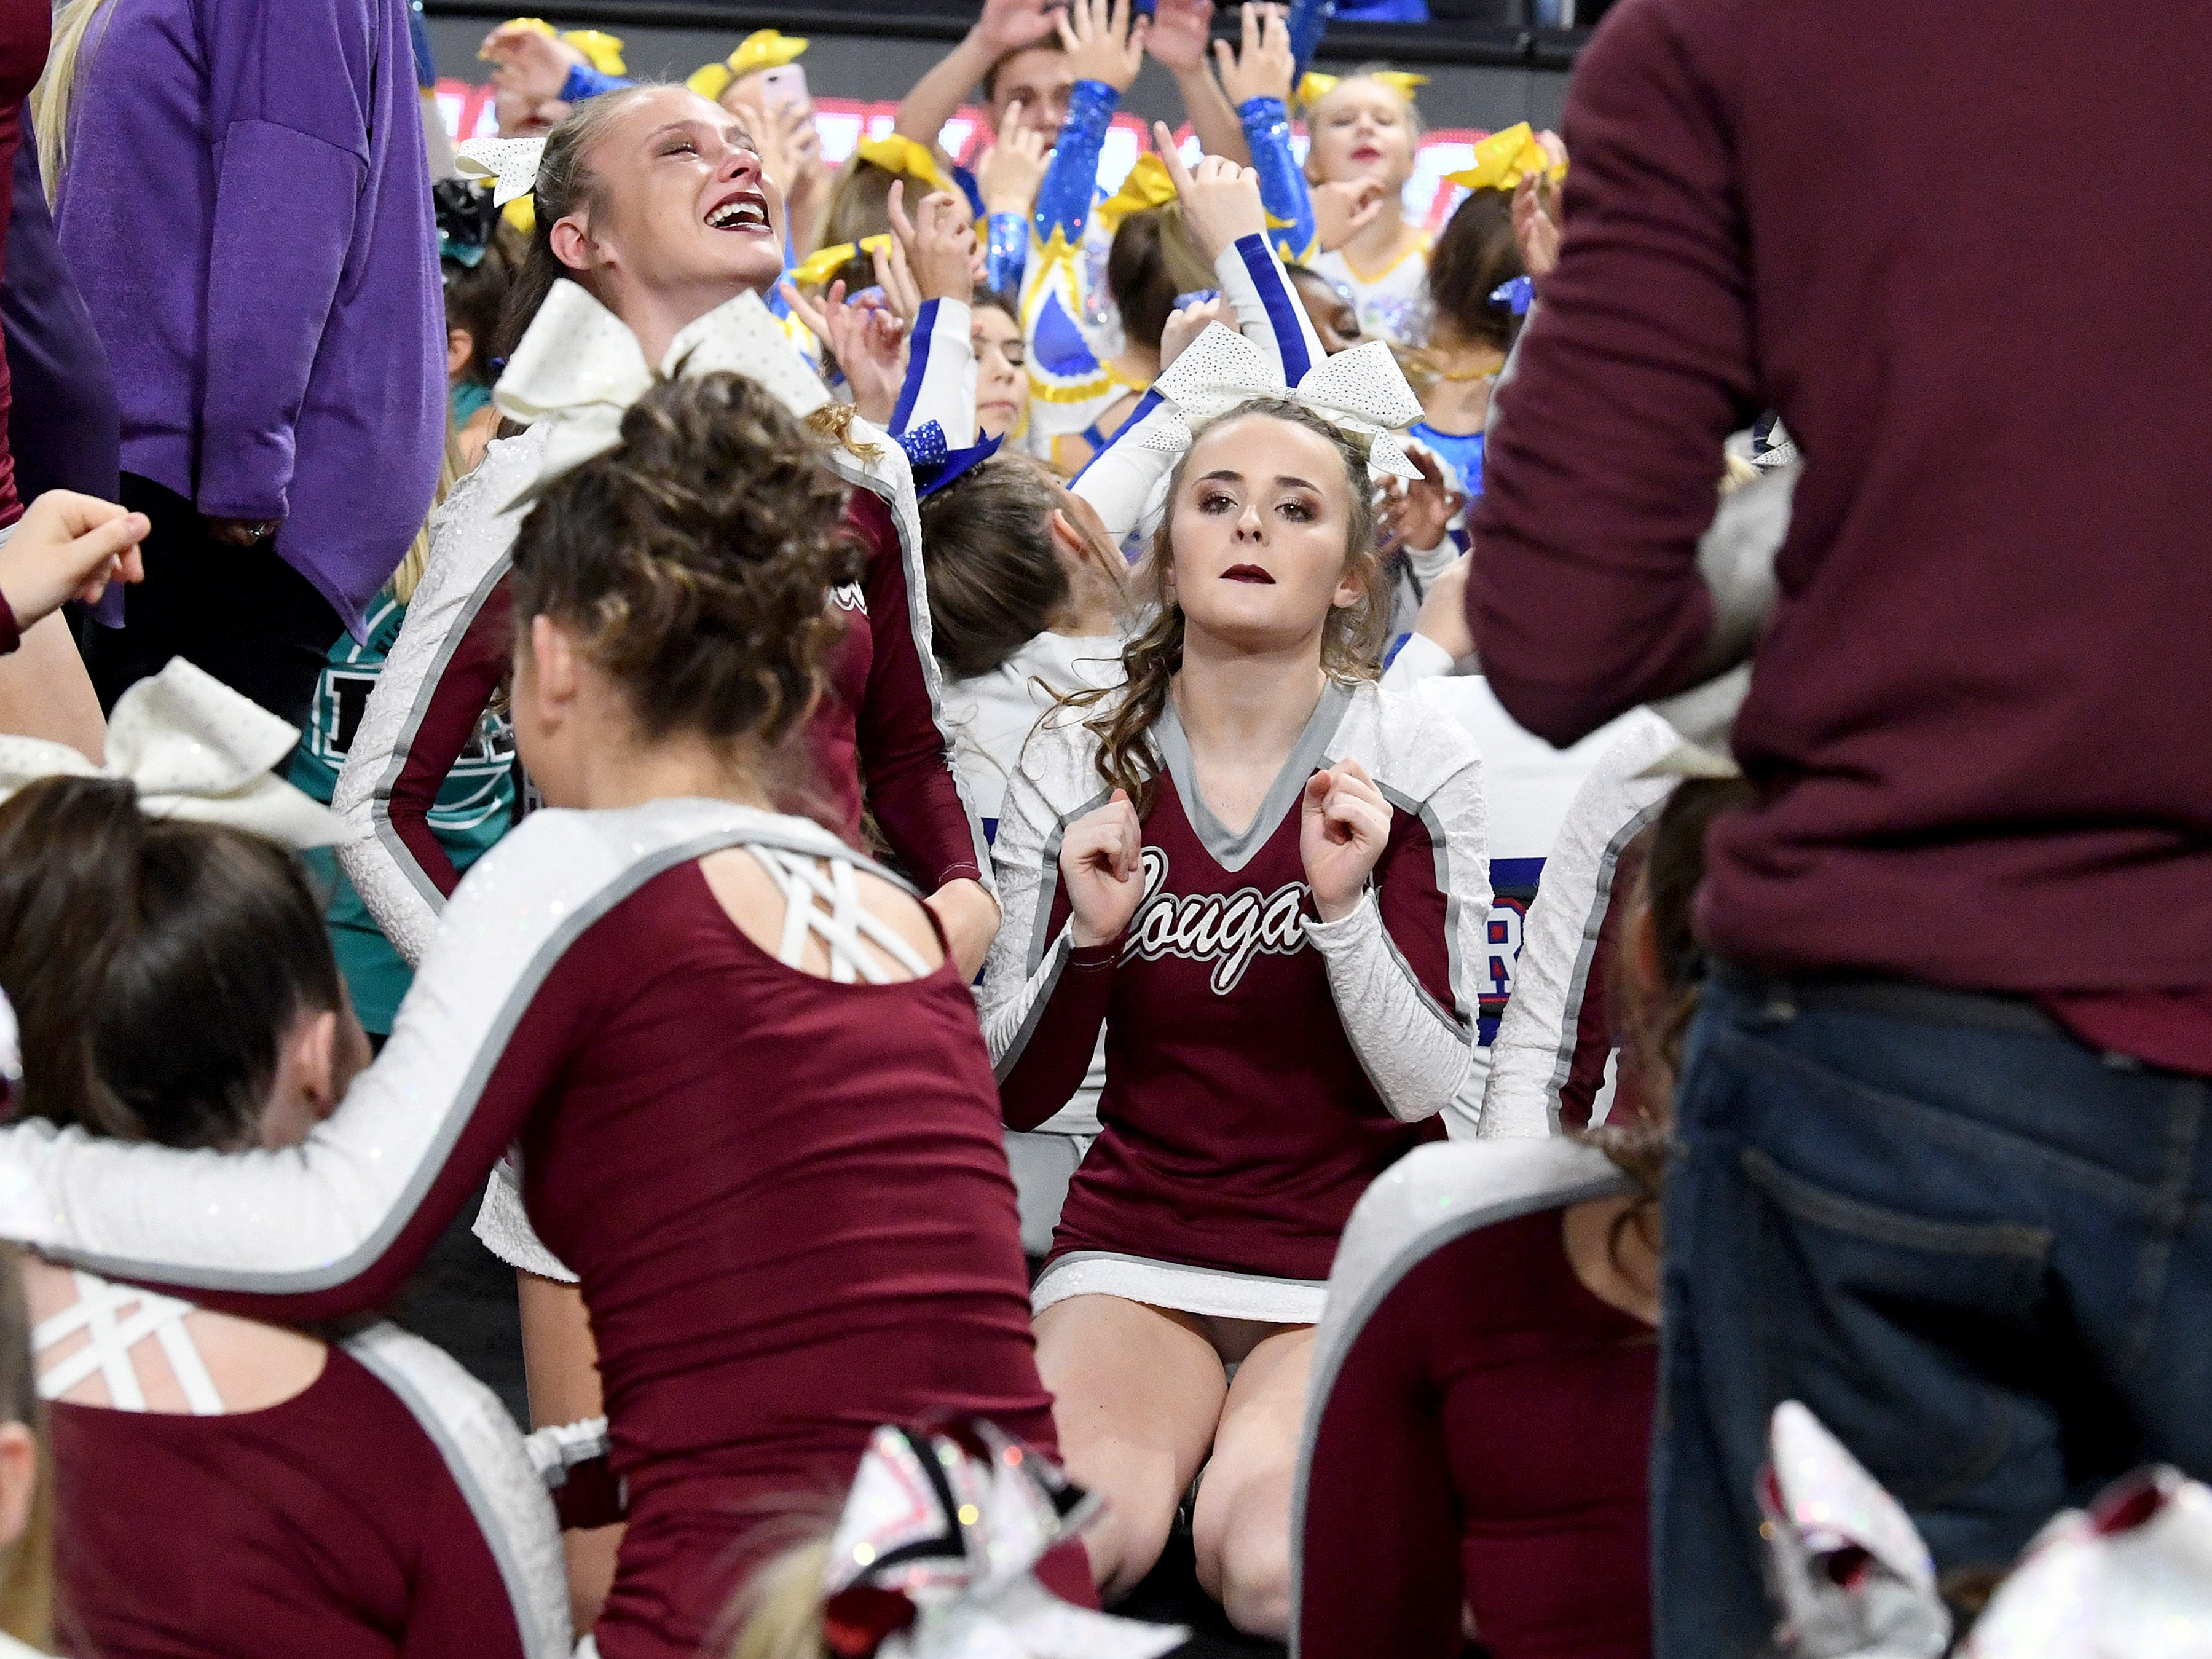 Stuarts Draft's competition cheer team wait for the winners to be announced for the Class 2 division in the VHSL Competition Cheer Championships in Richmond on Saturday, Nov. 3, 2018.